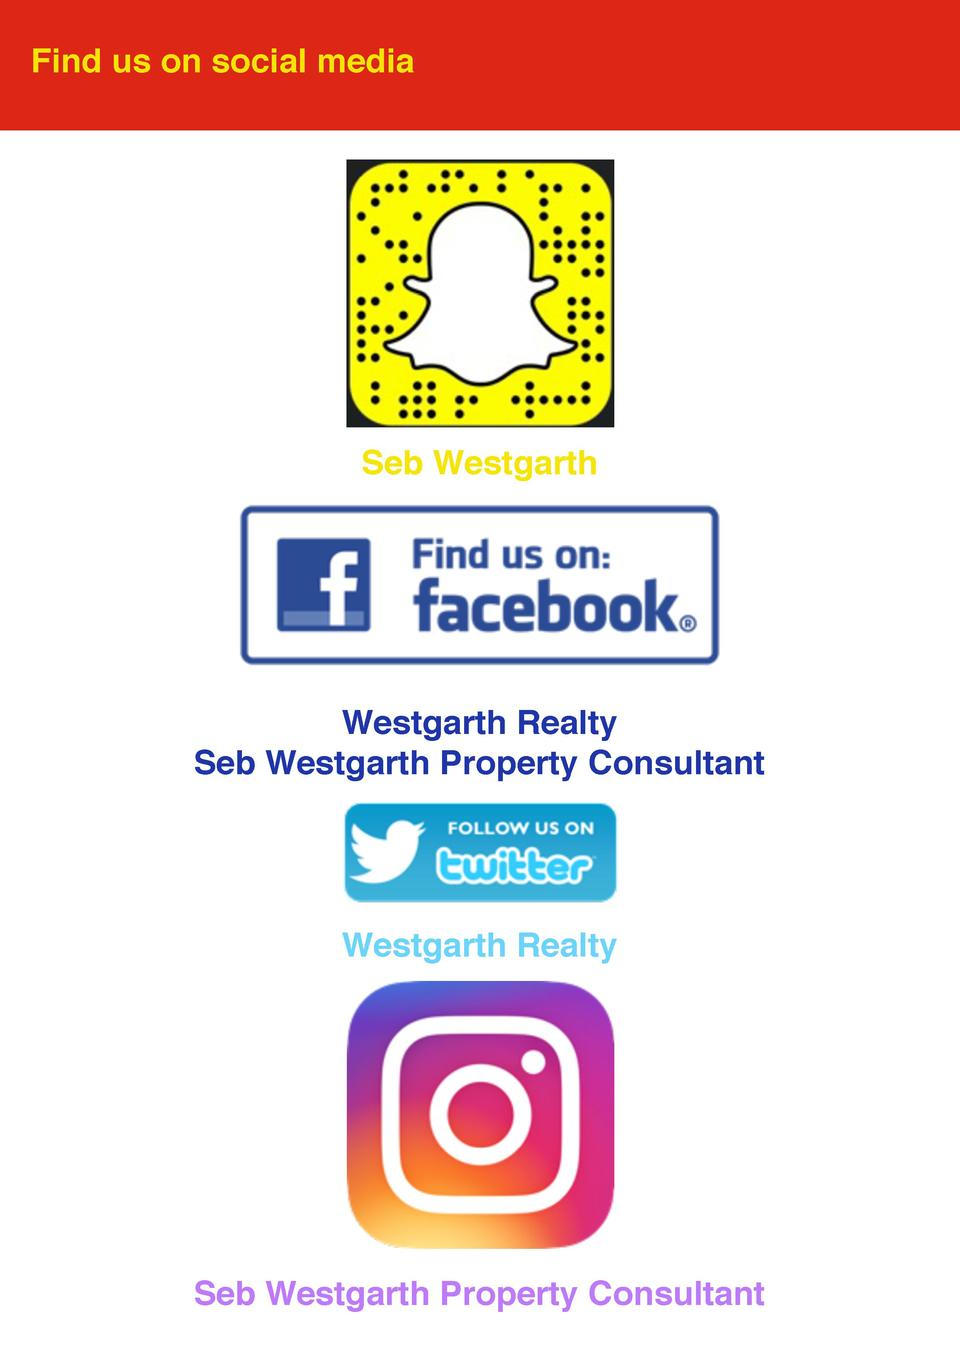 Find us on social media  Seb Westgarth  Westgarth Realty Seb Westgarth Property Consultant  Westgarth Realty  Seb Westgart...